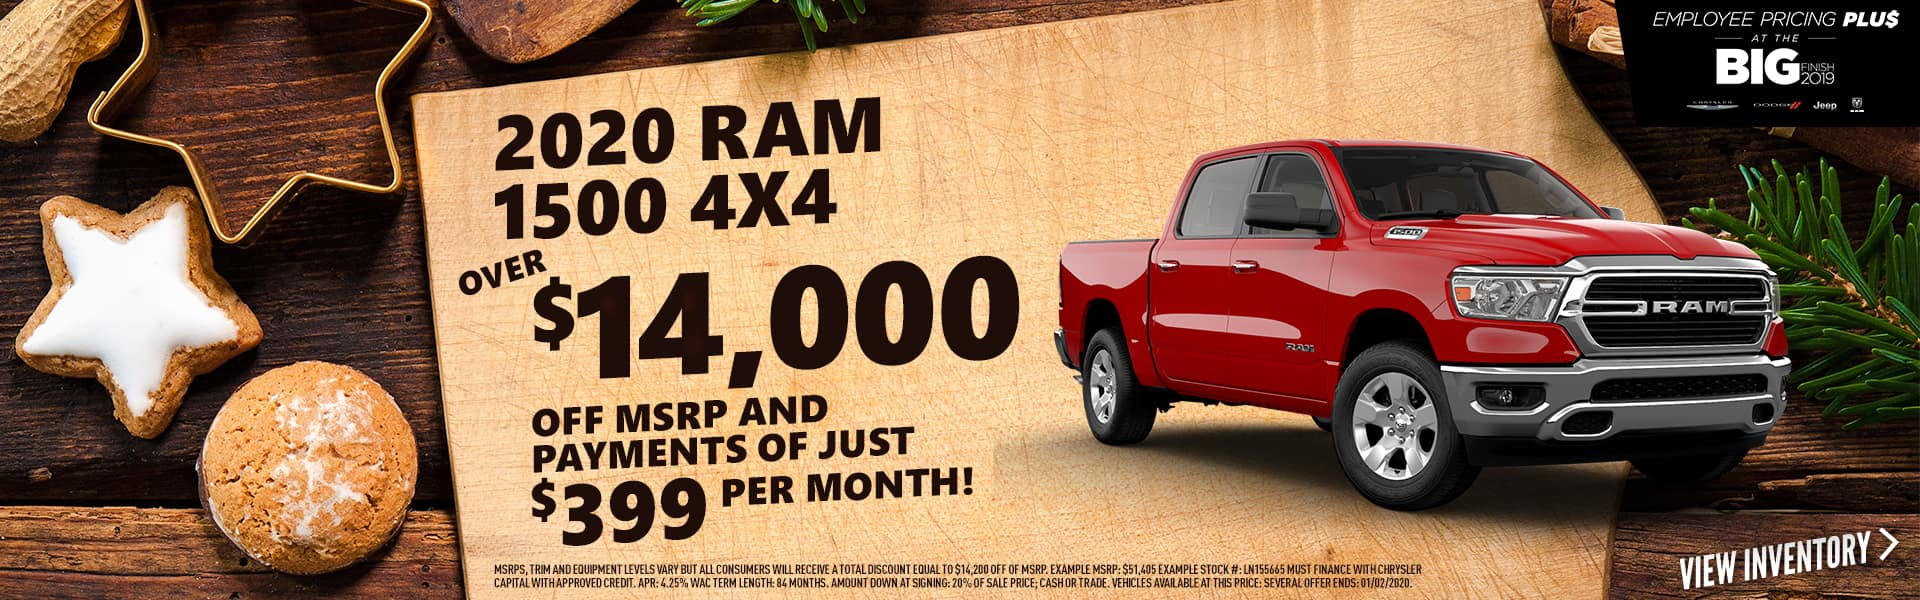 2020 RAM 1500 4x4 for over $14,000 off MSRP